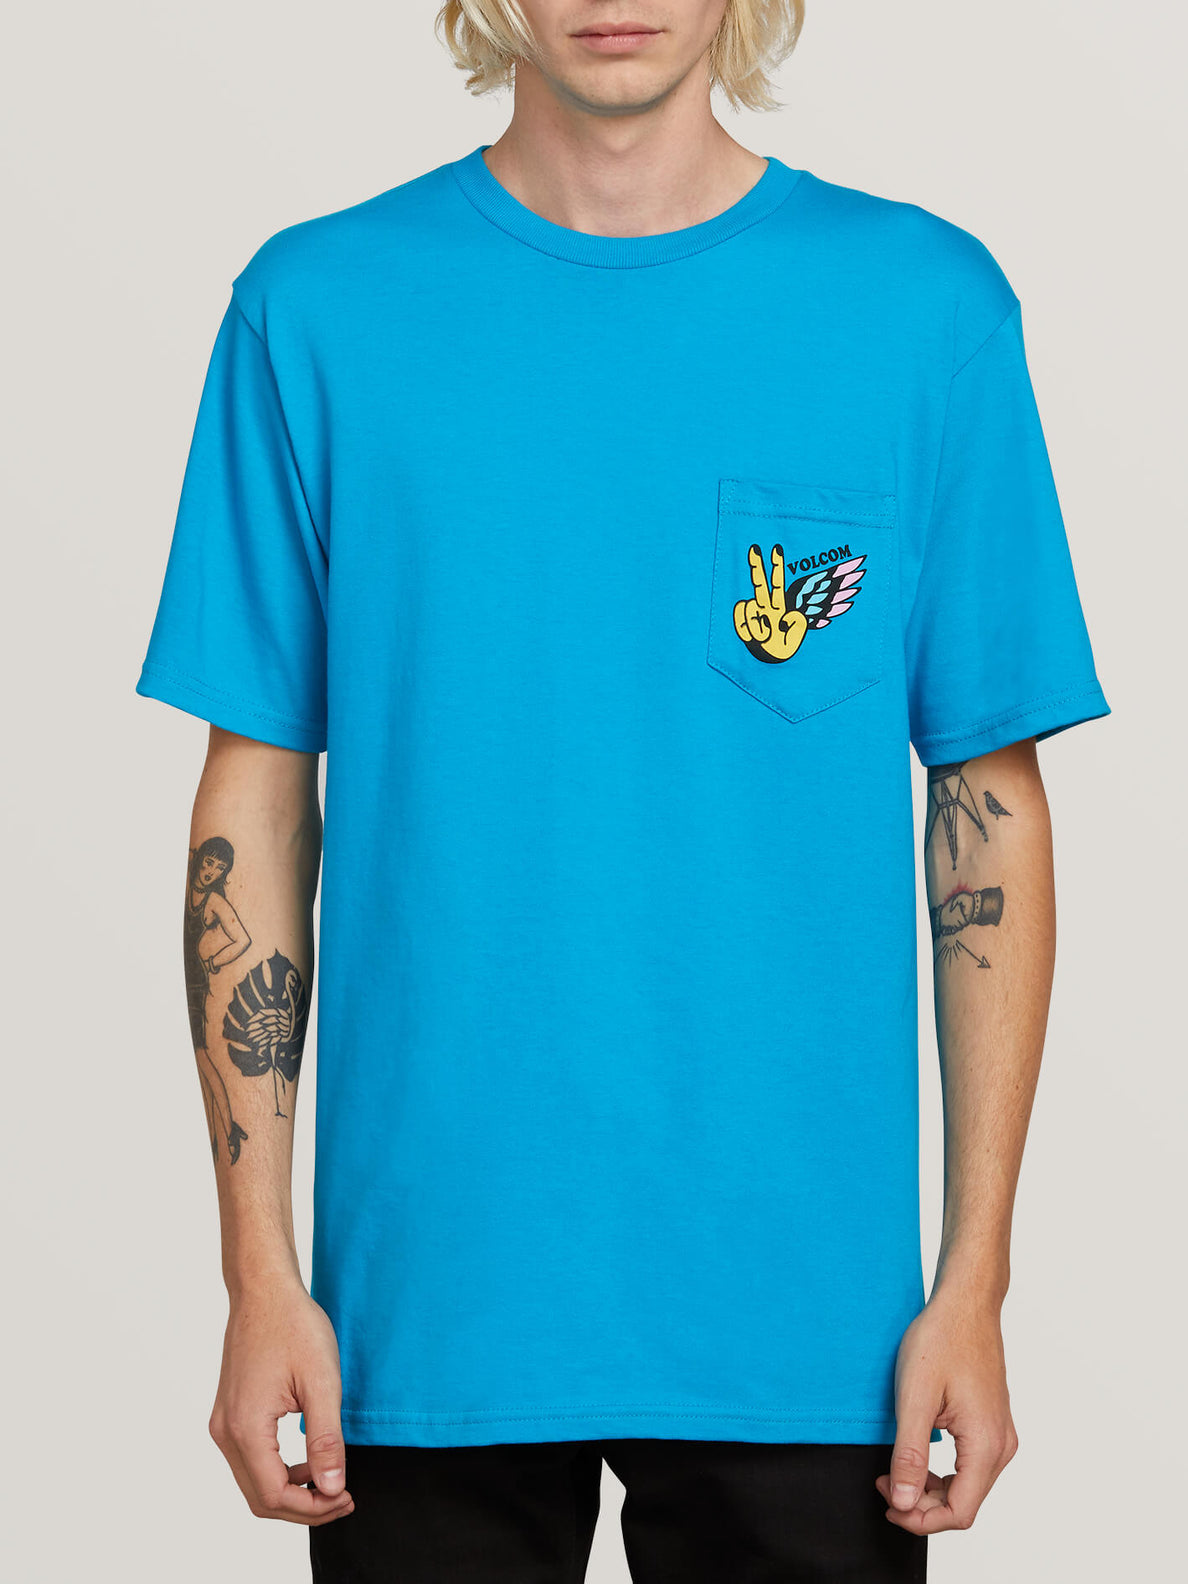 Winged Peace Short Sleeve Pocket Tee In Bright Blue, Front View